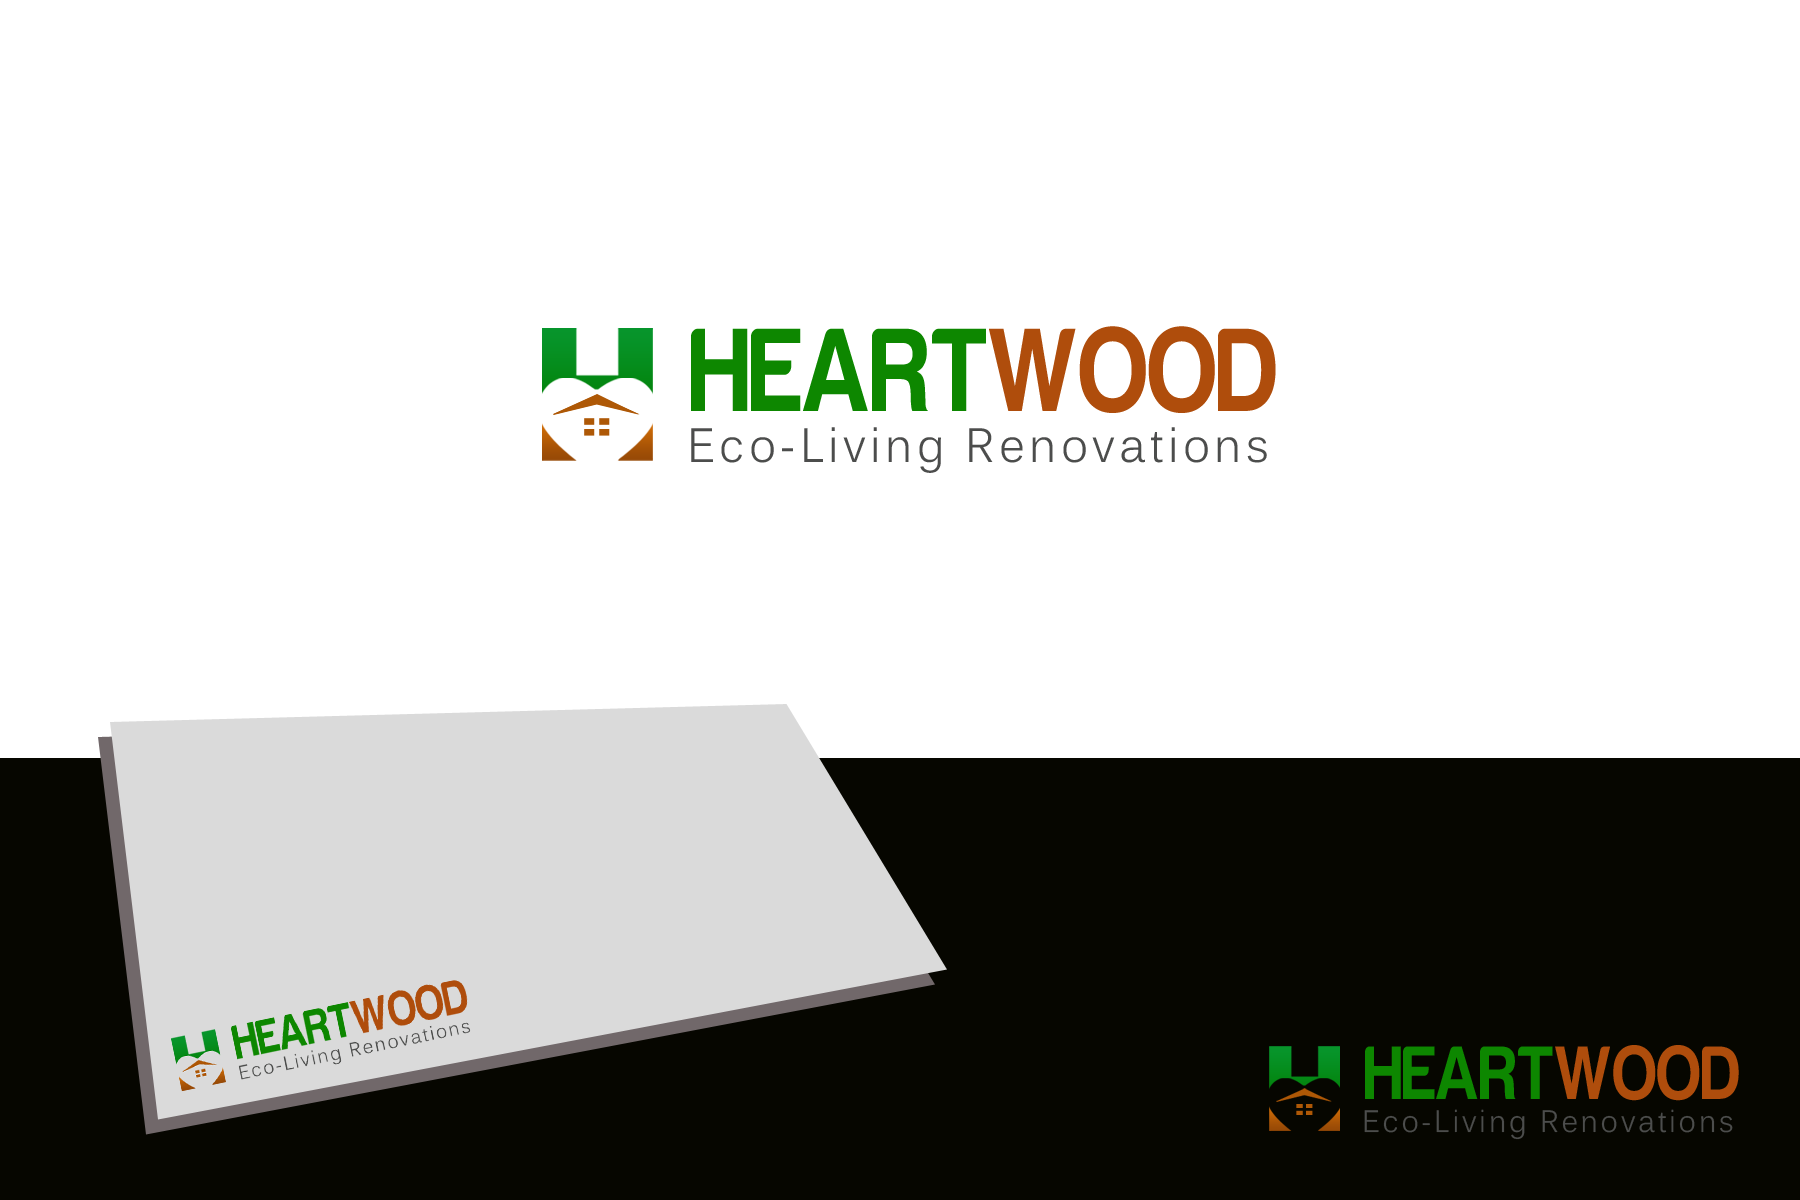 Logo Design by Golden_Hand - Entry No. 15 in the Logo Design Contest New Logo Design for Heartwood Eco-Living Renovations.